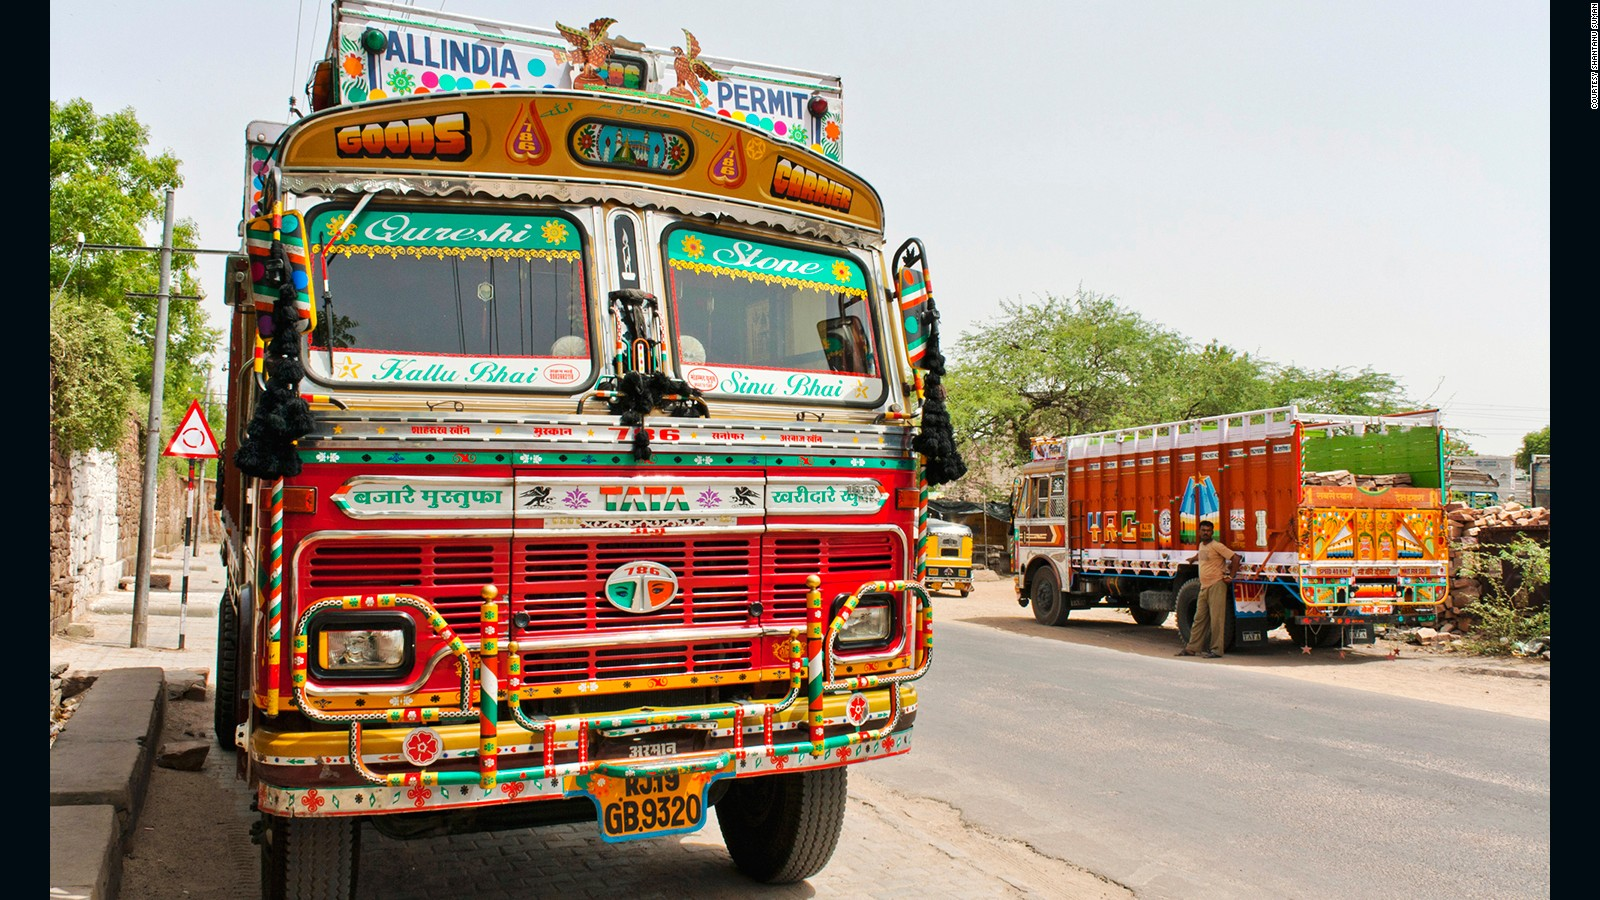 The psychedelic world of Indian truck art | CNN Travel